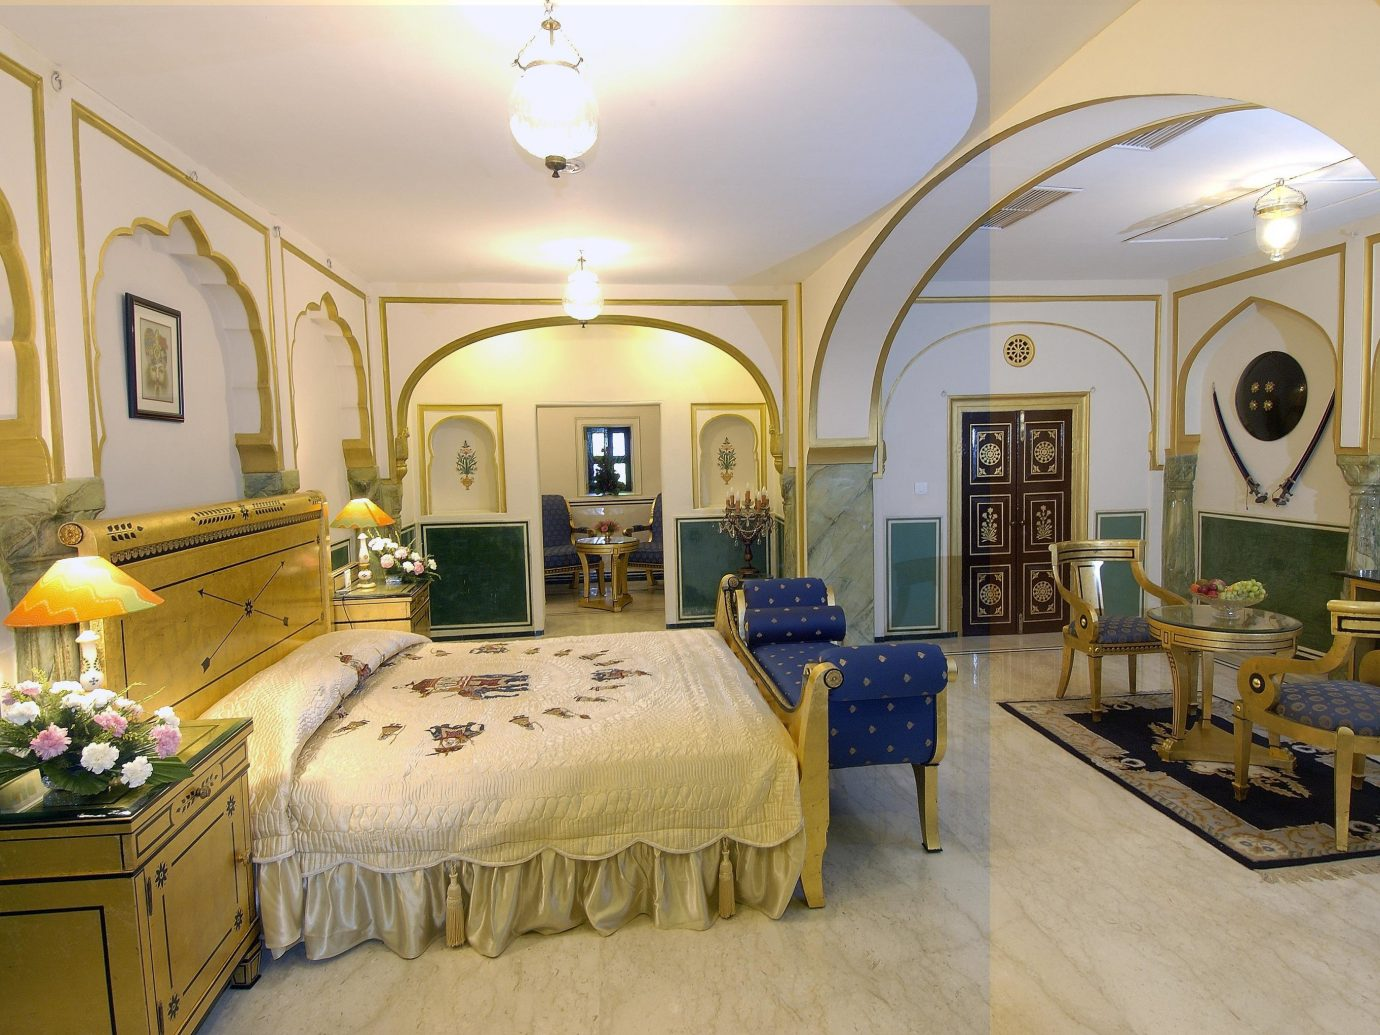 Hotels Luxury Travel indoor wall floor room bed property estate Bedroom home ceiling yellow living room mansion interior design real estate cottage Suite Villa farmhouse furniture